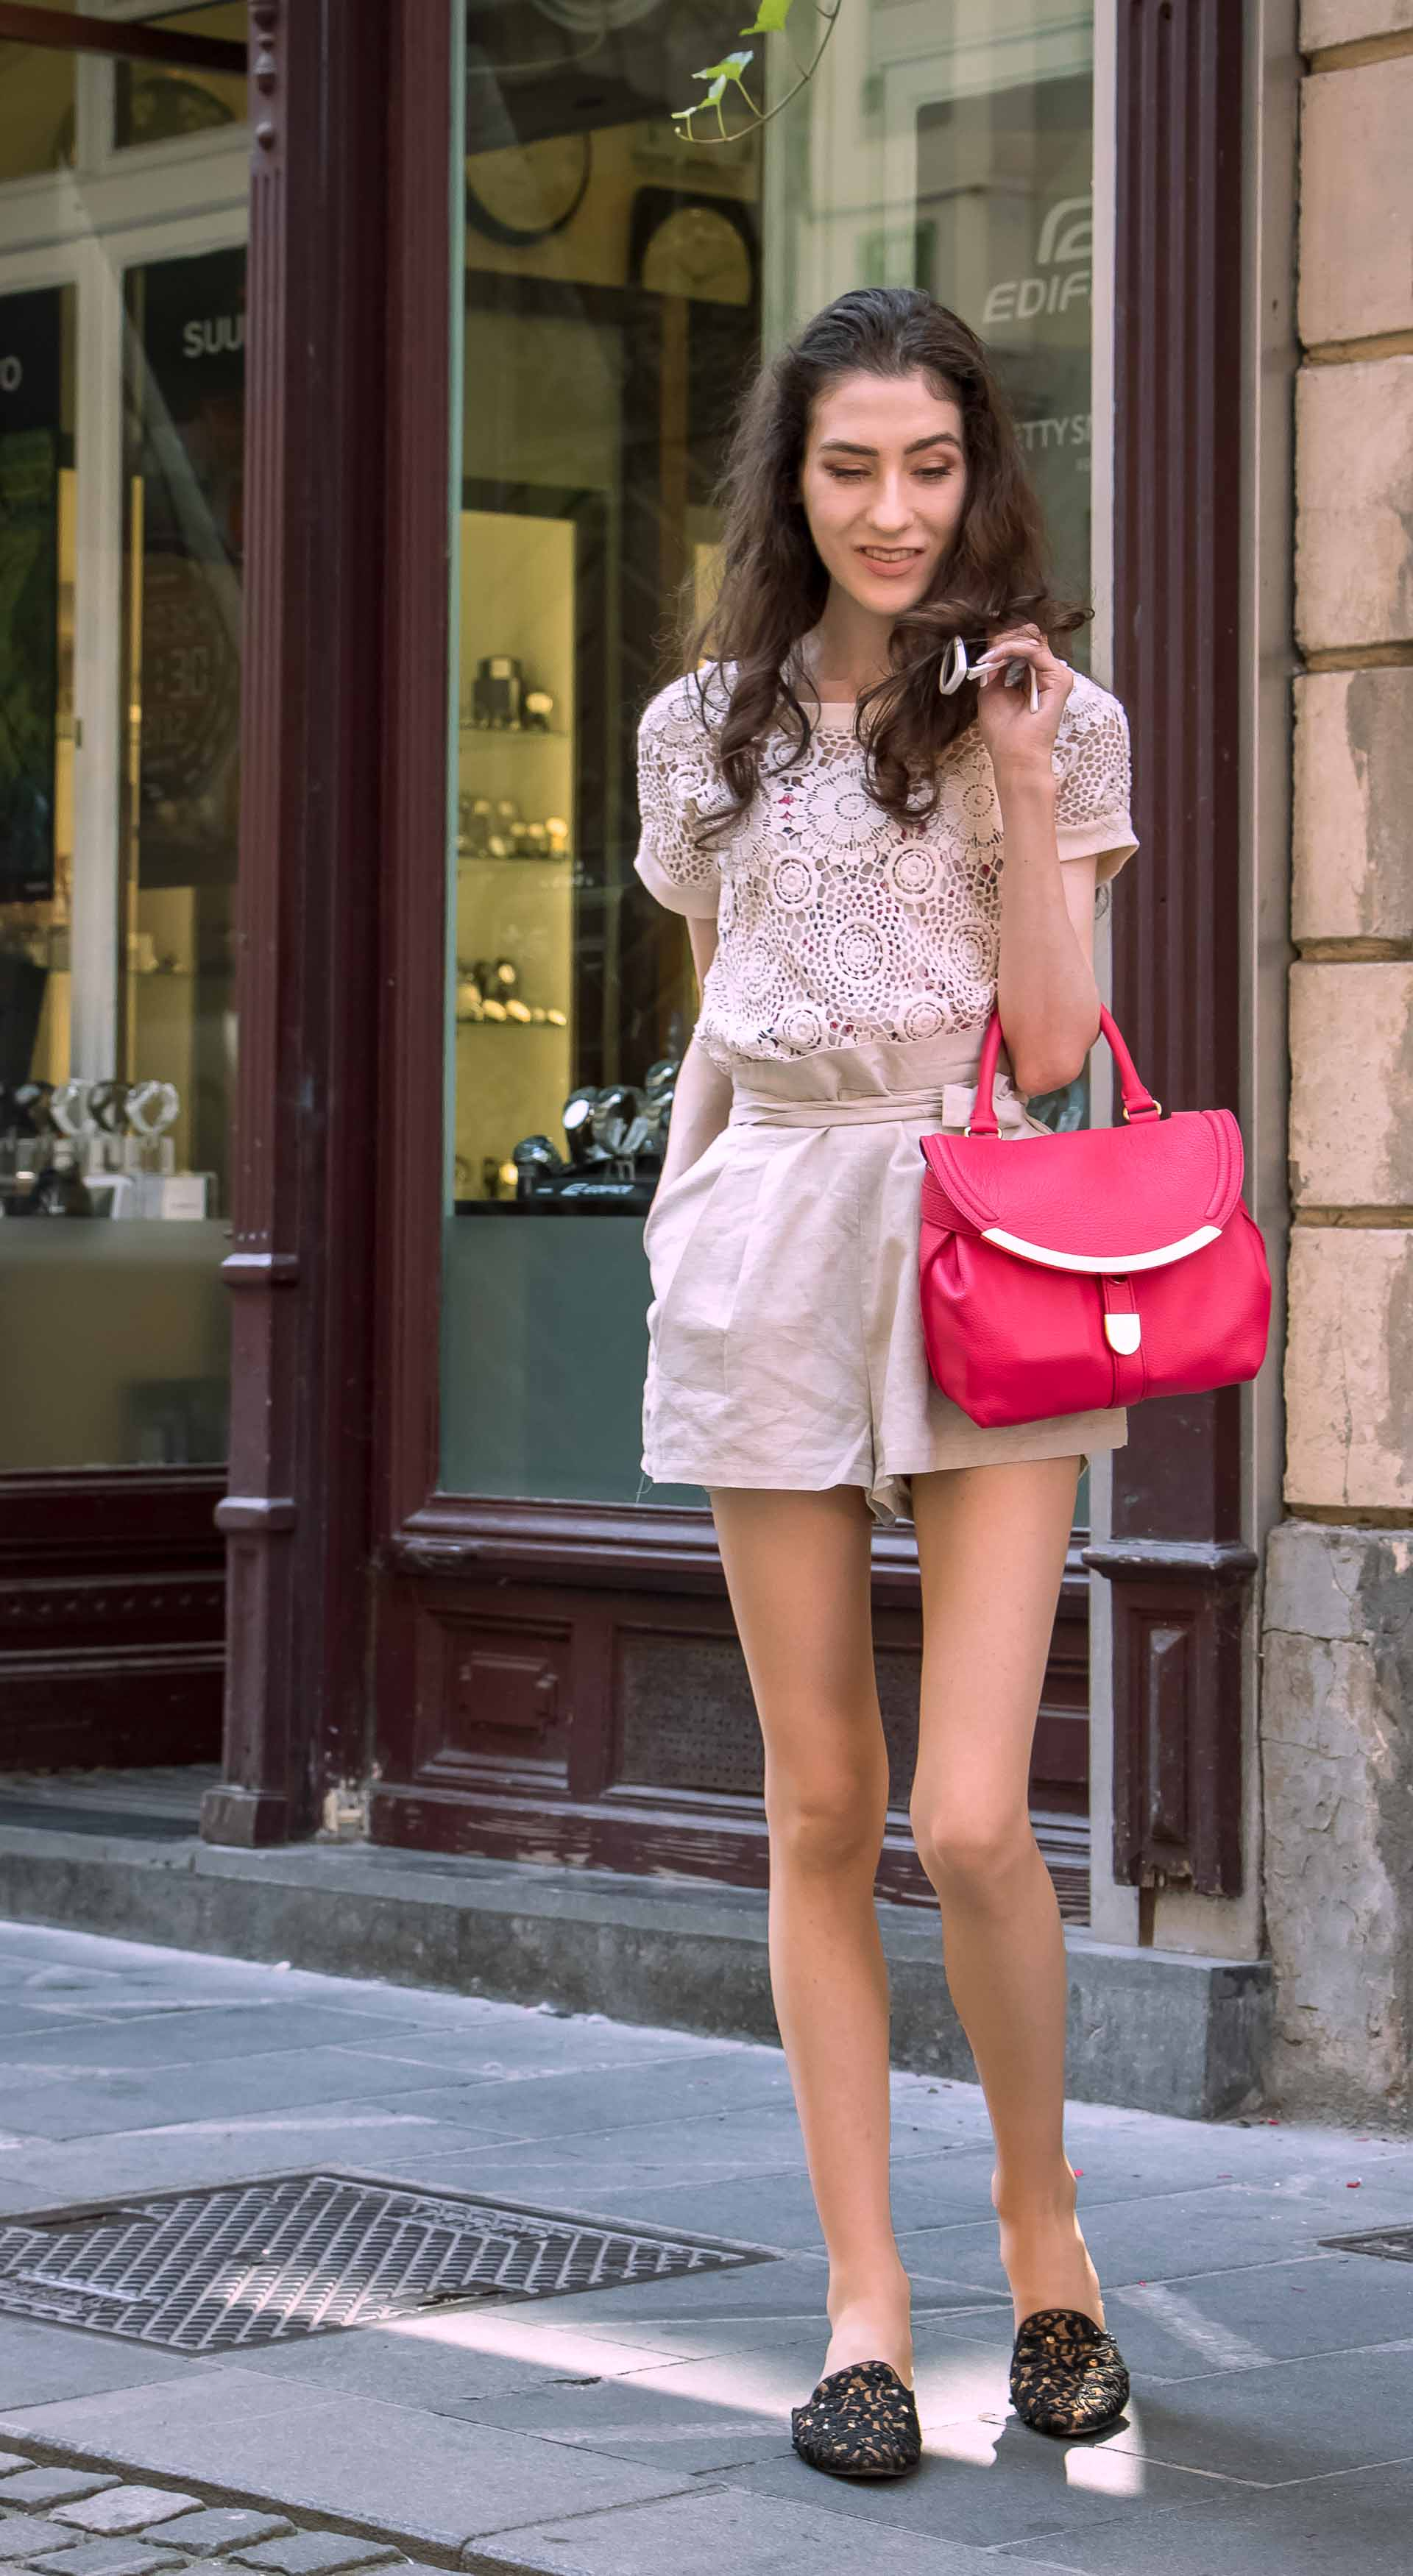 Beautiful Slovenian Fashion Blogger Veronika Lipar of Brunette from Wall wearing beige linen shorts, crochet top, black slip-ons shoes, pink top handle bag, standing infant of the store front